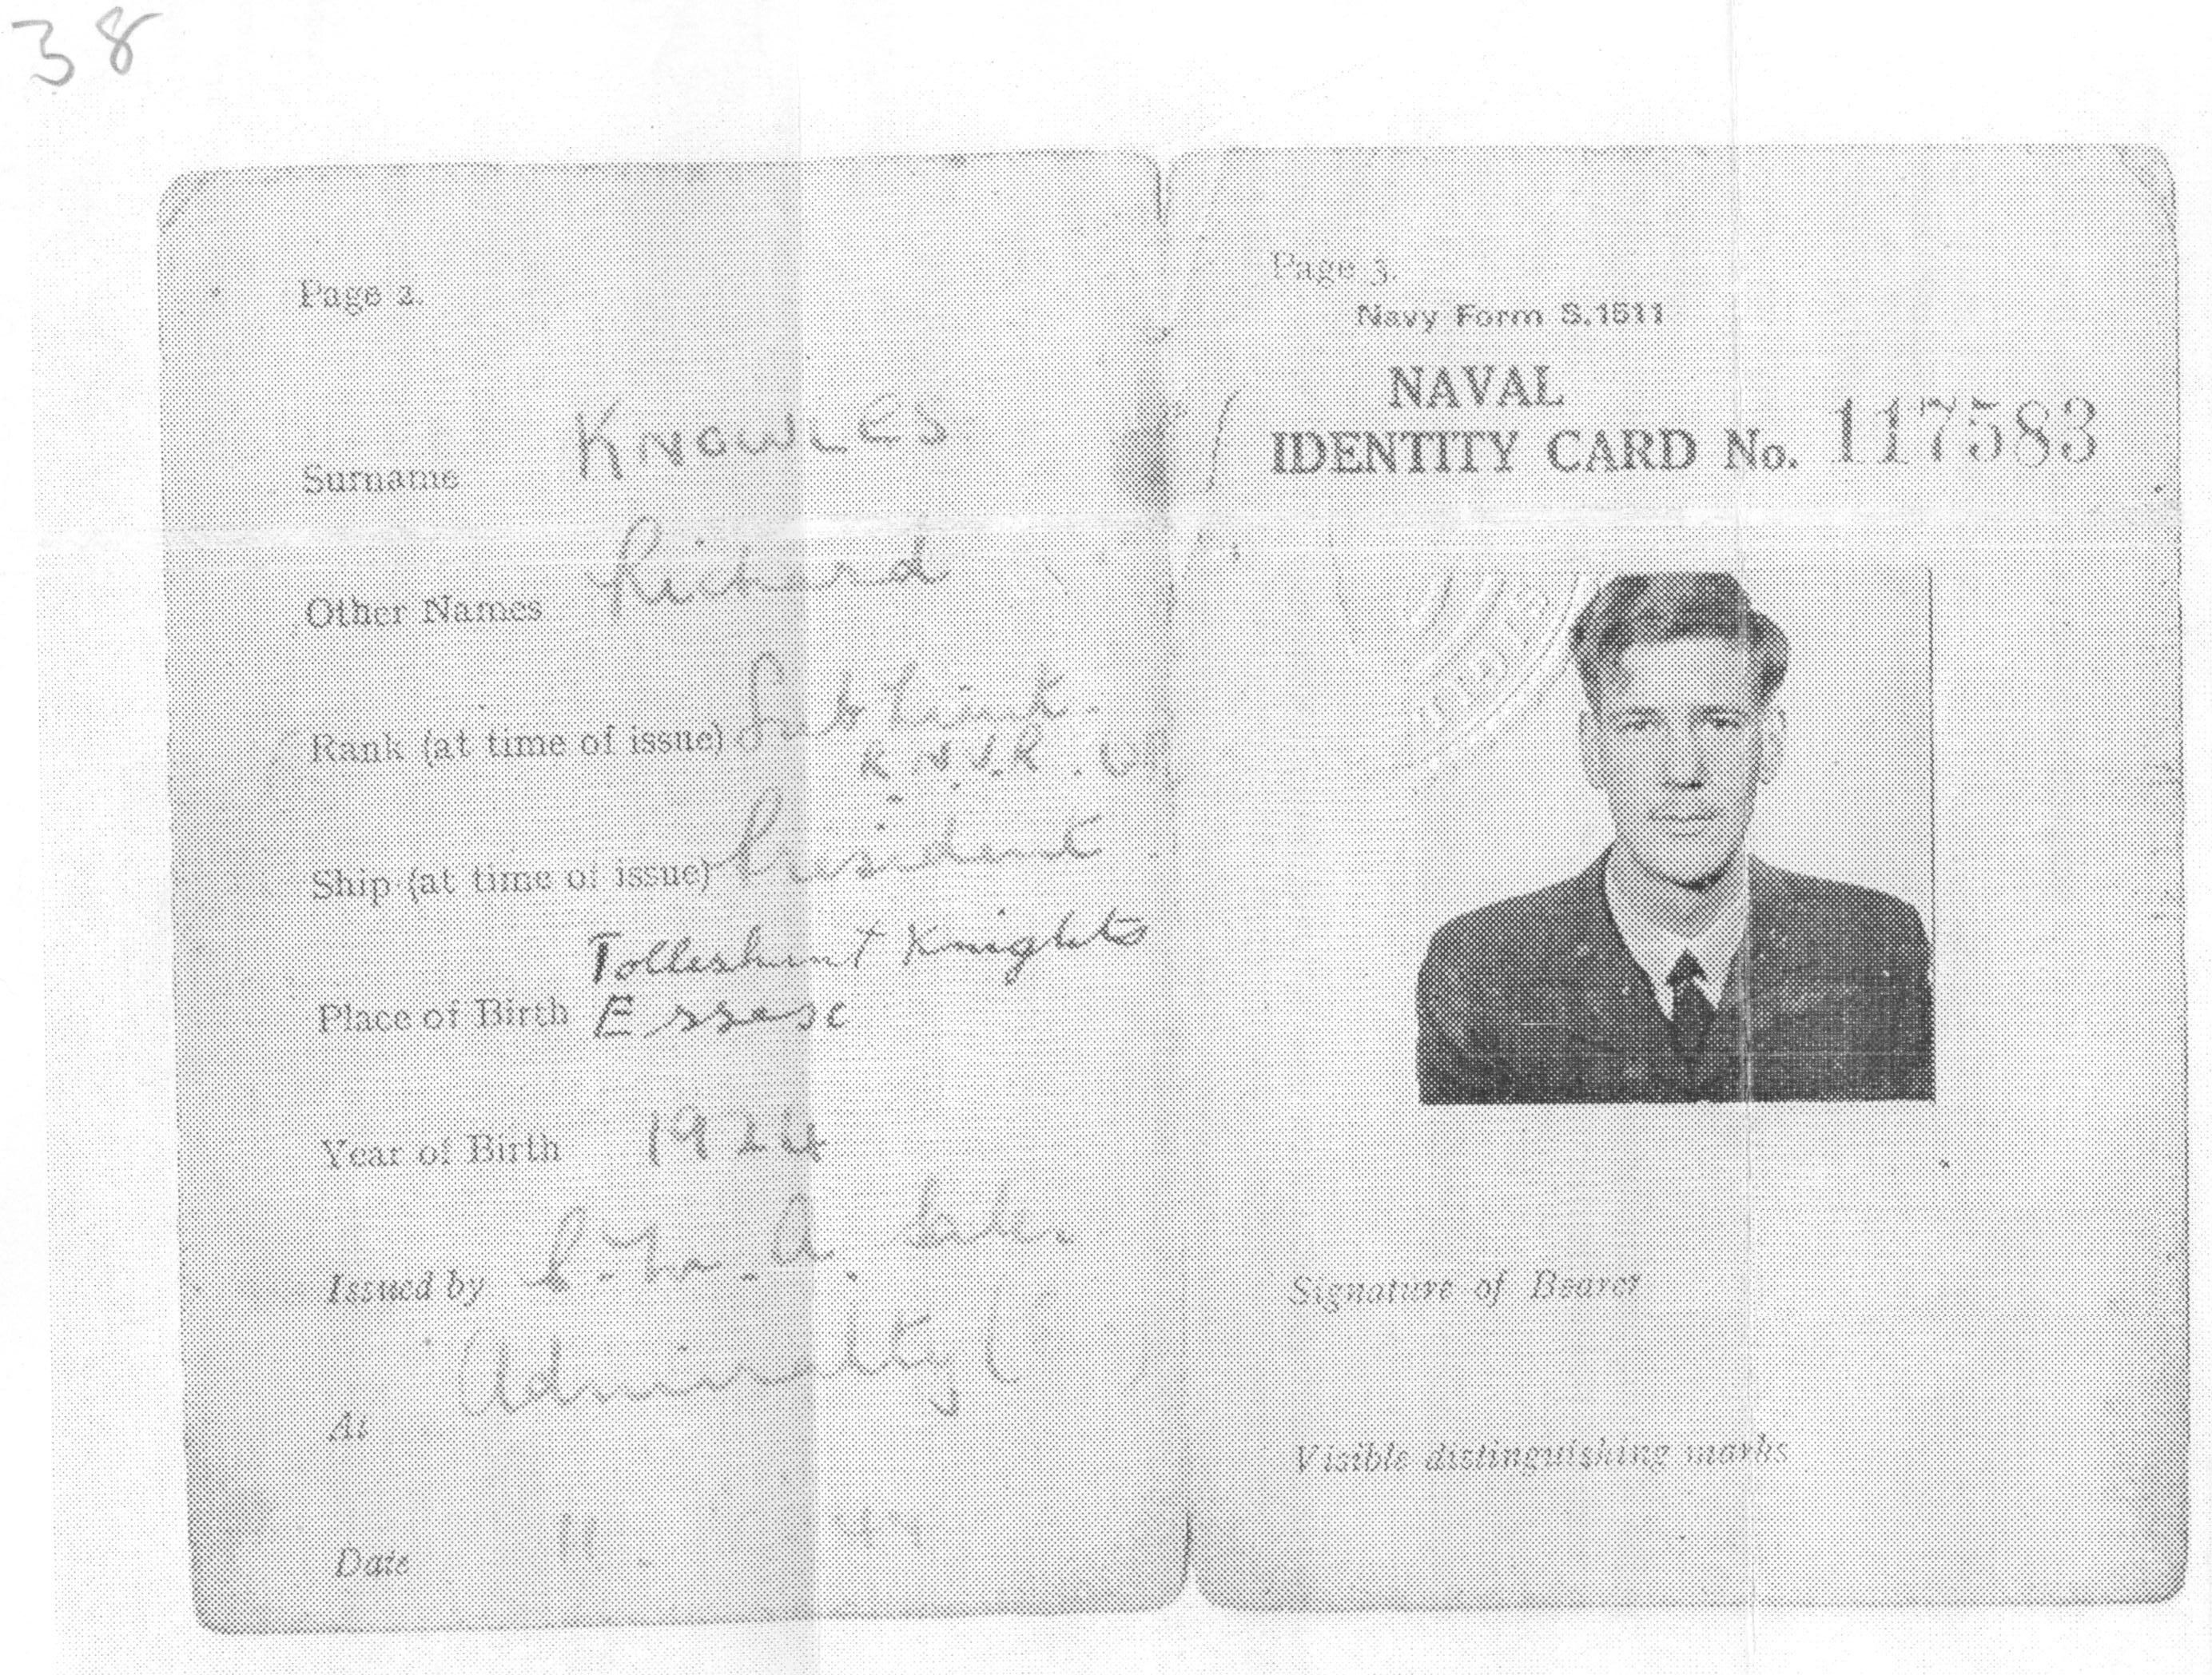 Richard Brett-Knowles' Naval Identity Card, 1944